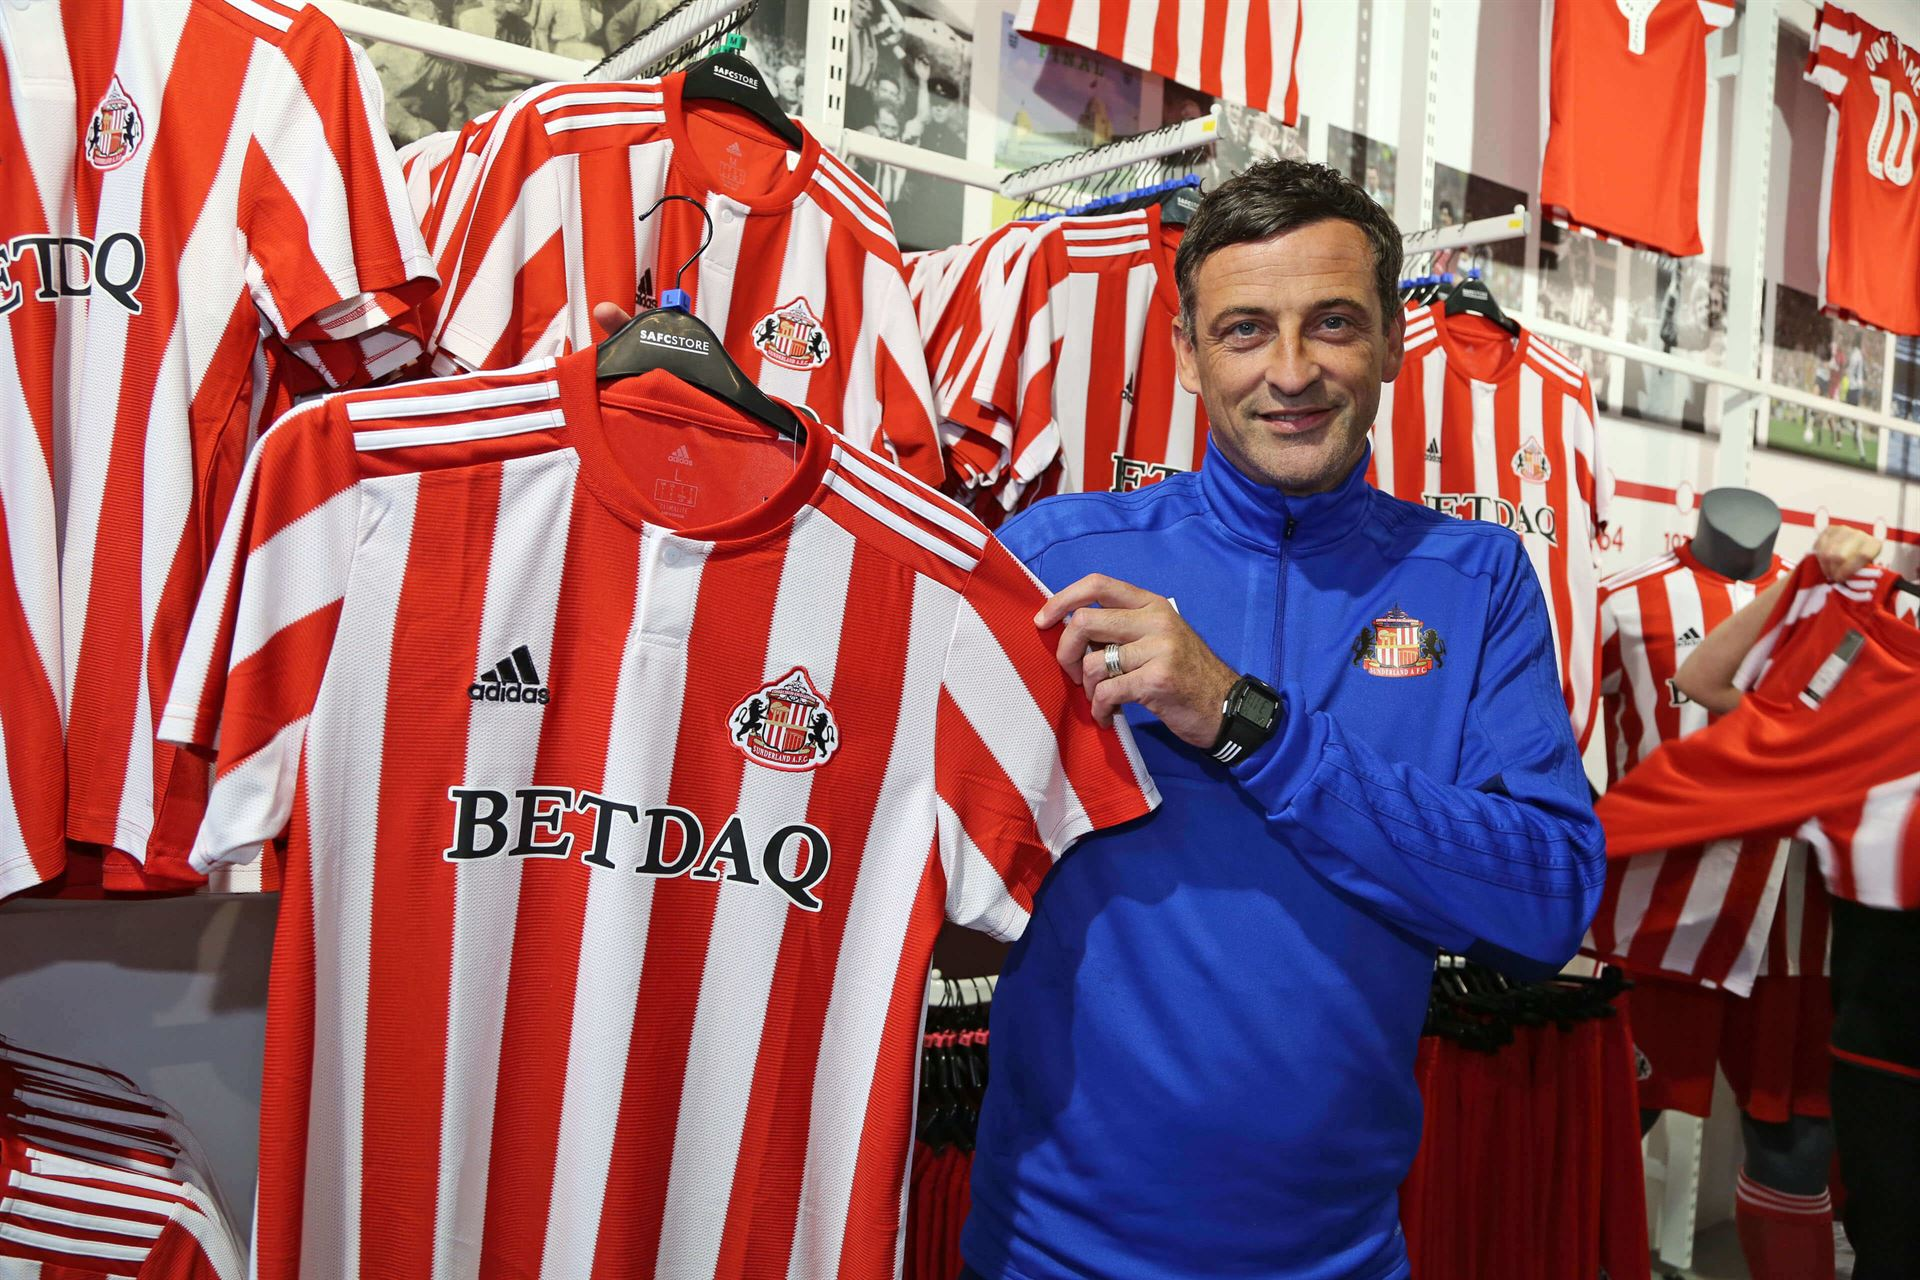 hight resolution of hundreds of fans queued to be amongst the first to get their hands sunderland afc s new home kit which went on sale last friday 20 7 18 exclusively to